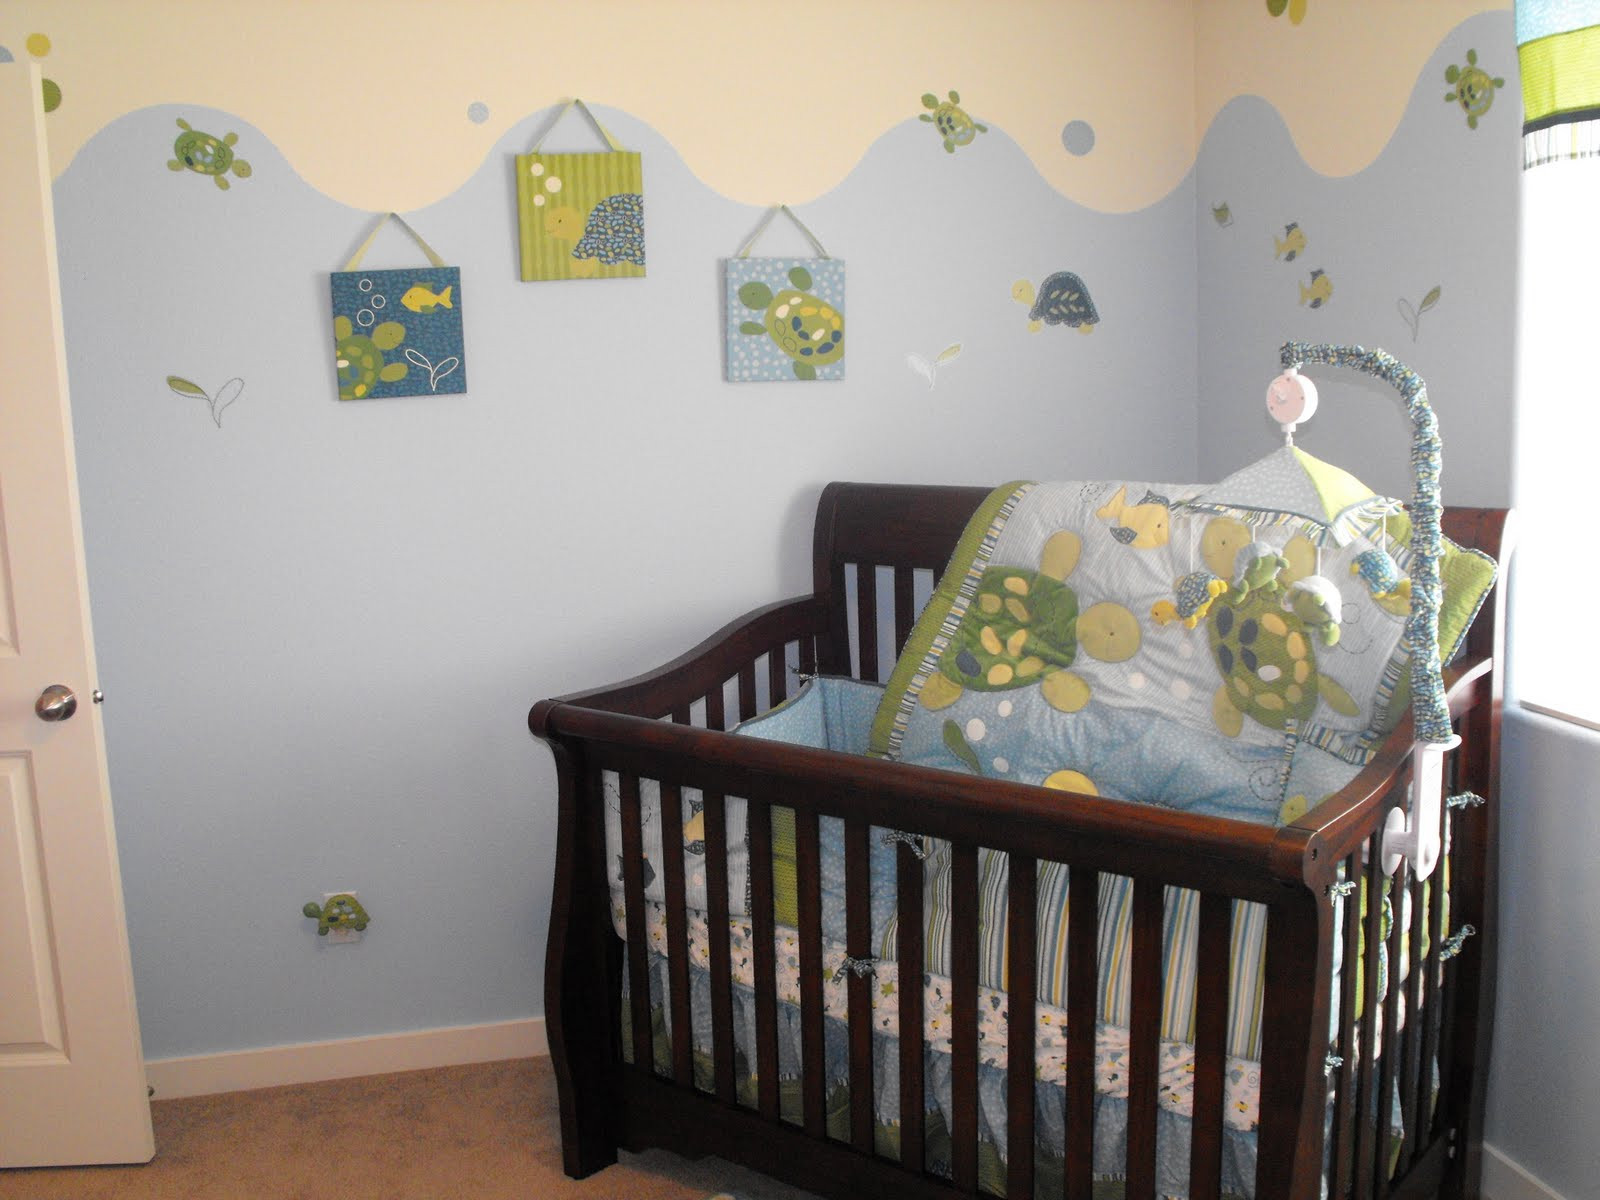 Baby Boy Room Decorations  30 Astounding Baby Boy Room Ideas SloDive